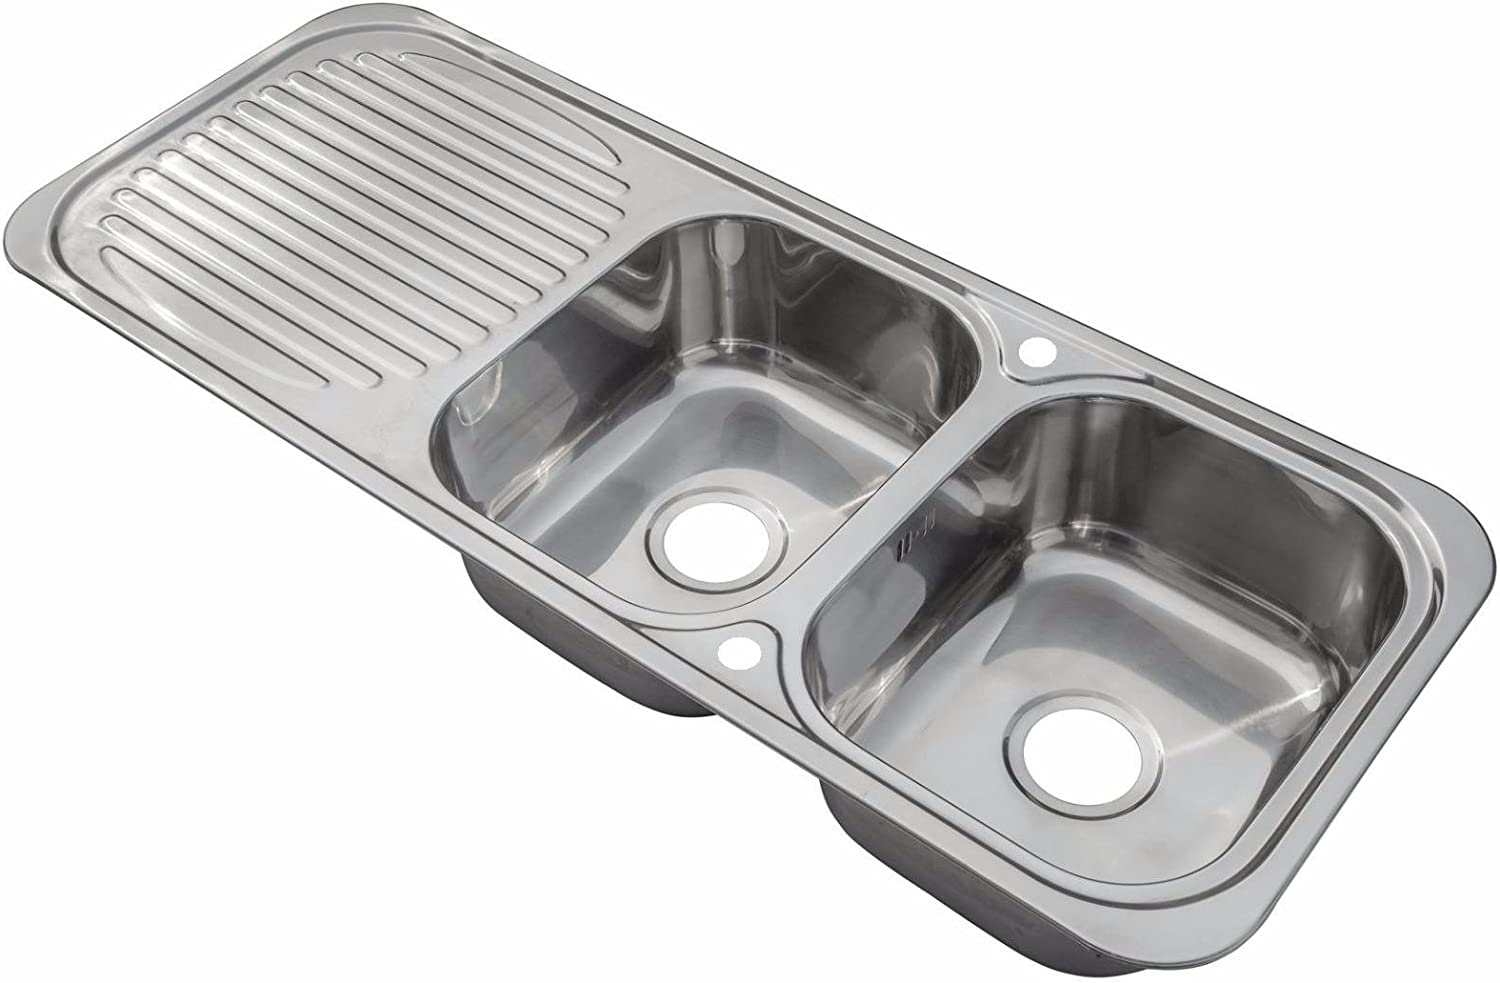 Grand Taps Stainless Steel Inset Kitchen Sink Double Bowl with Drainer & Wastes (E10 mr) Polished Finish